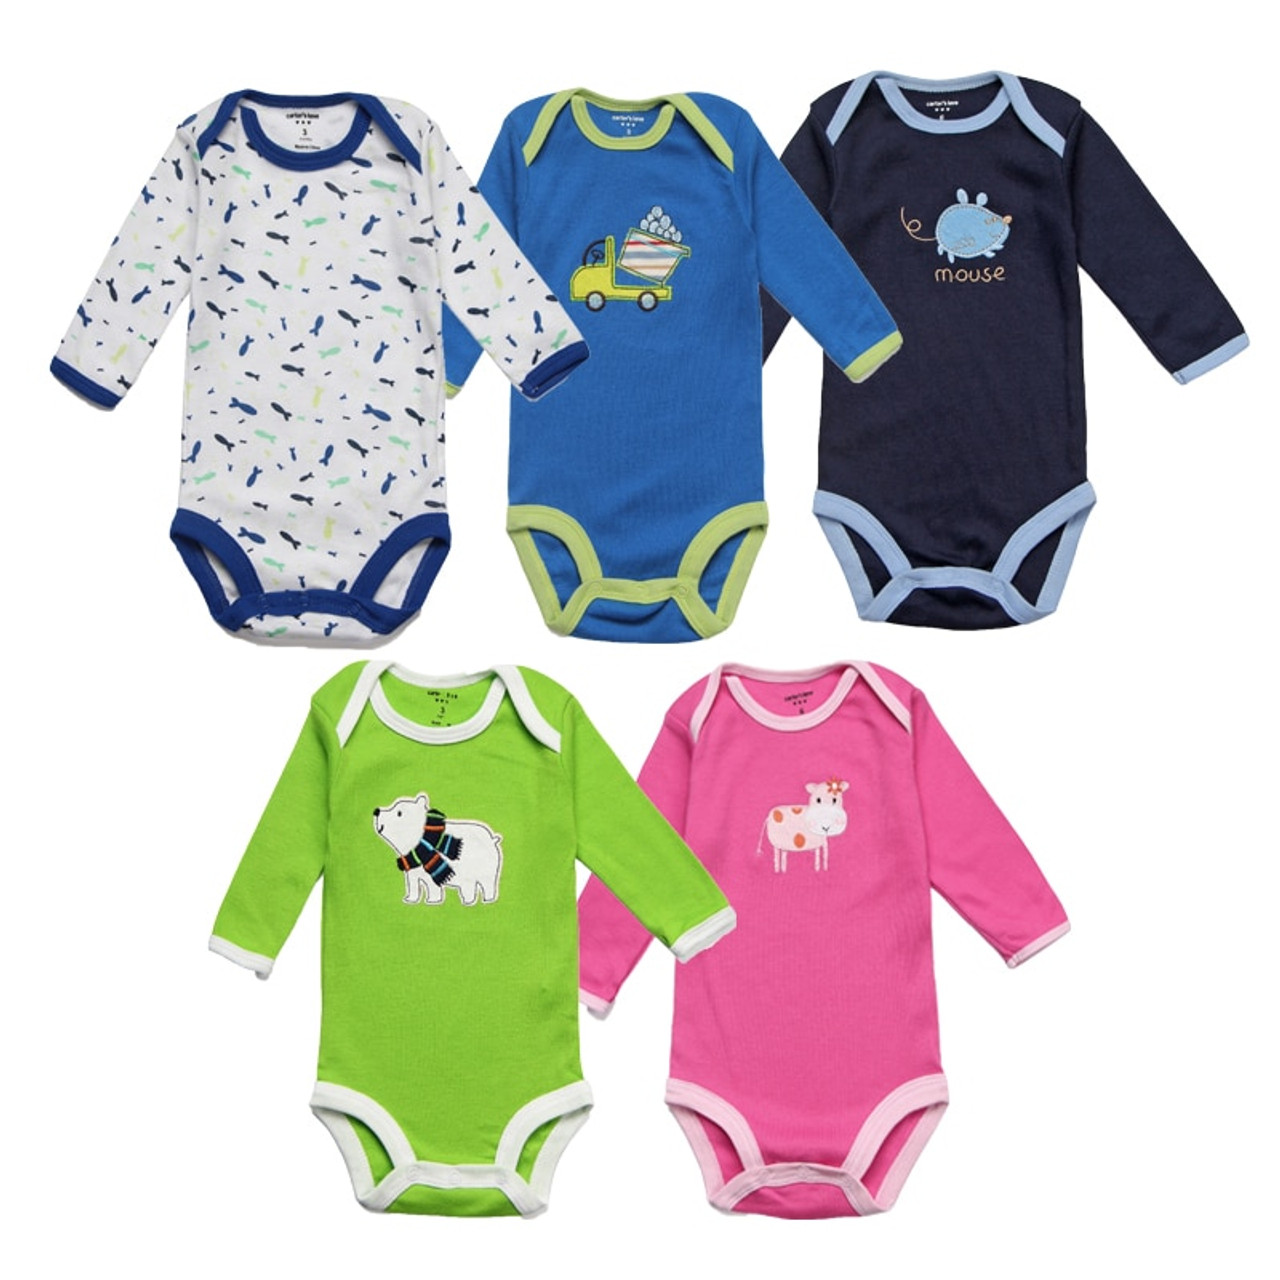 4520240a8 ... 5Pcs/lot Baby Rompers Spring Baby Boy Clothes Cotton Baby Girl Clothing  Roupas Bebe Infant ...